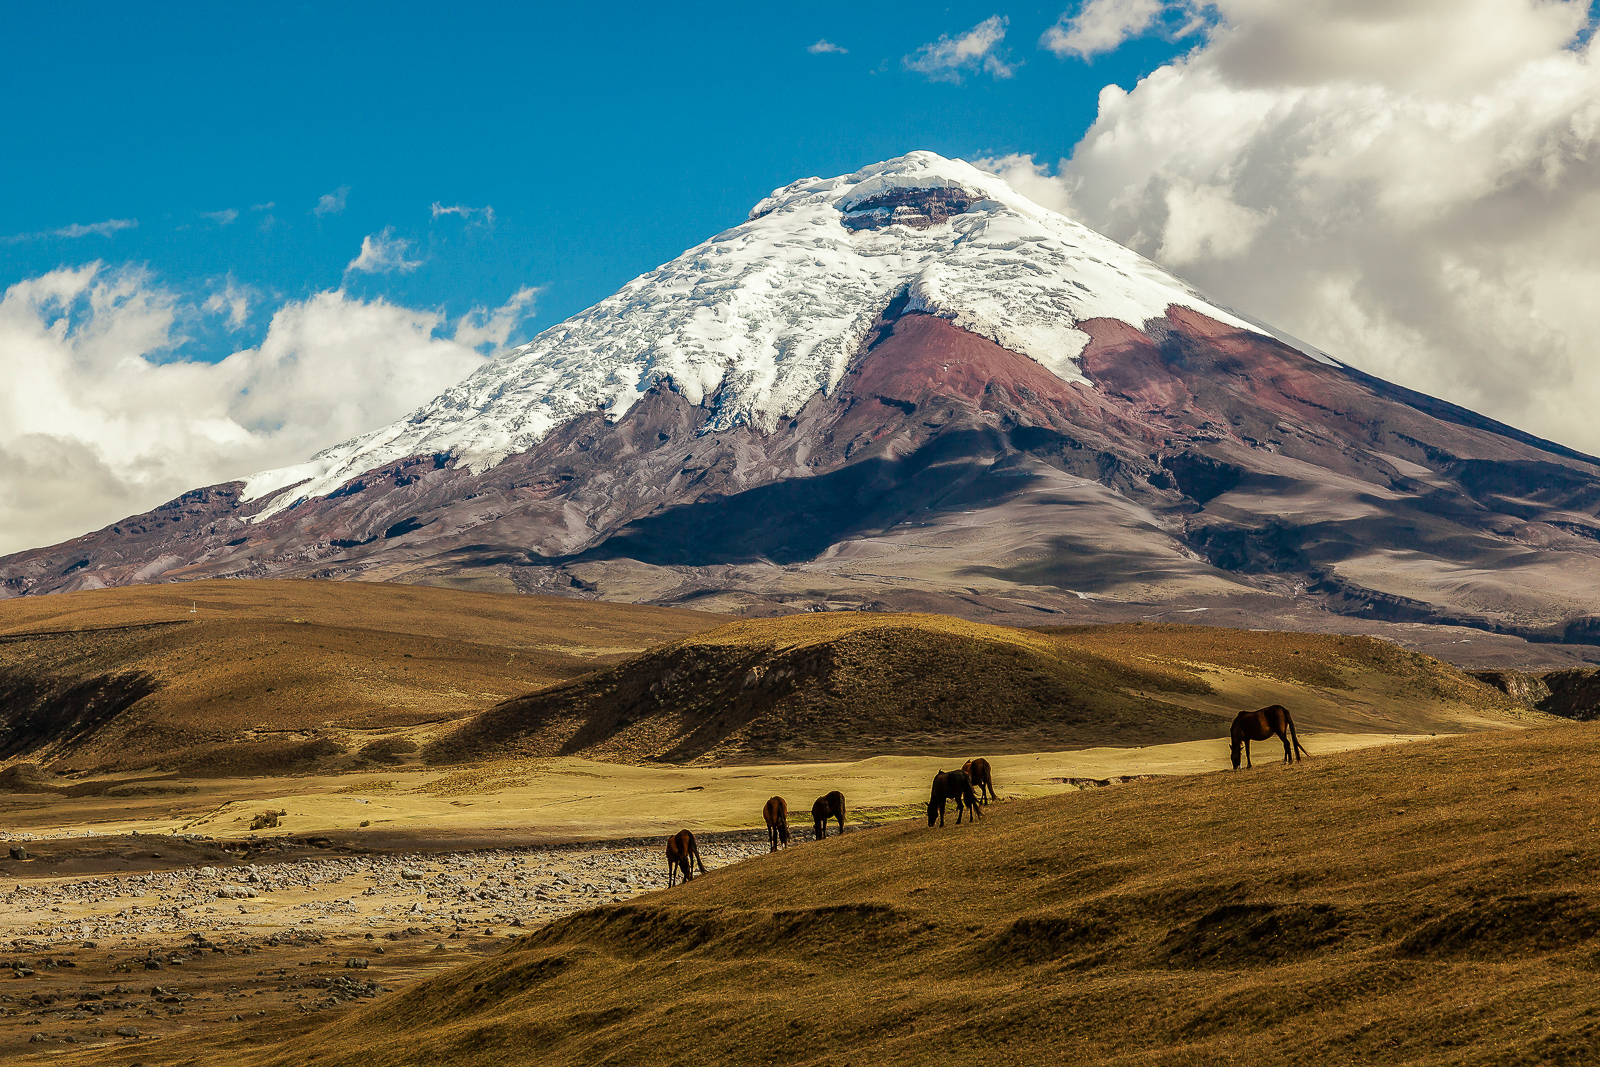 Things to do in Ecuador: visit the Cotopaxi National Park, Cotopaxi, an active volcano, at sunset with horses in the foreground